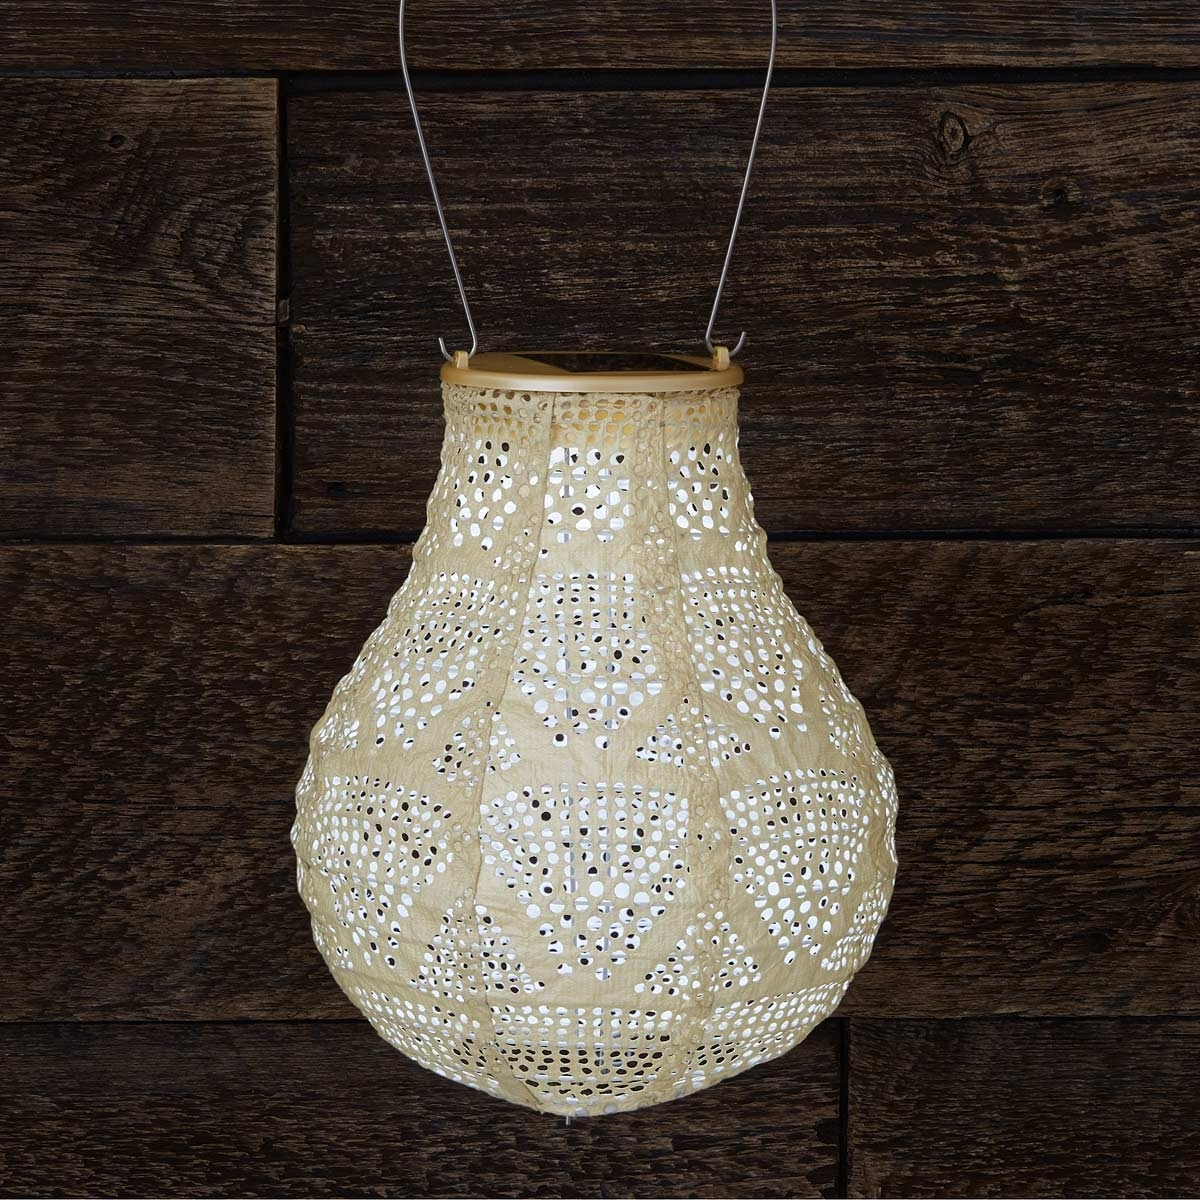 Pearl Teardrop Solar Lantern | Weather Resistant Outdoor Light Pertaining To Outdoor Weather Resistant Lanterns (View 11 of 20)